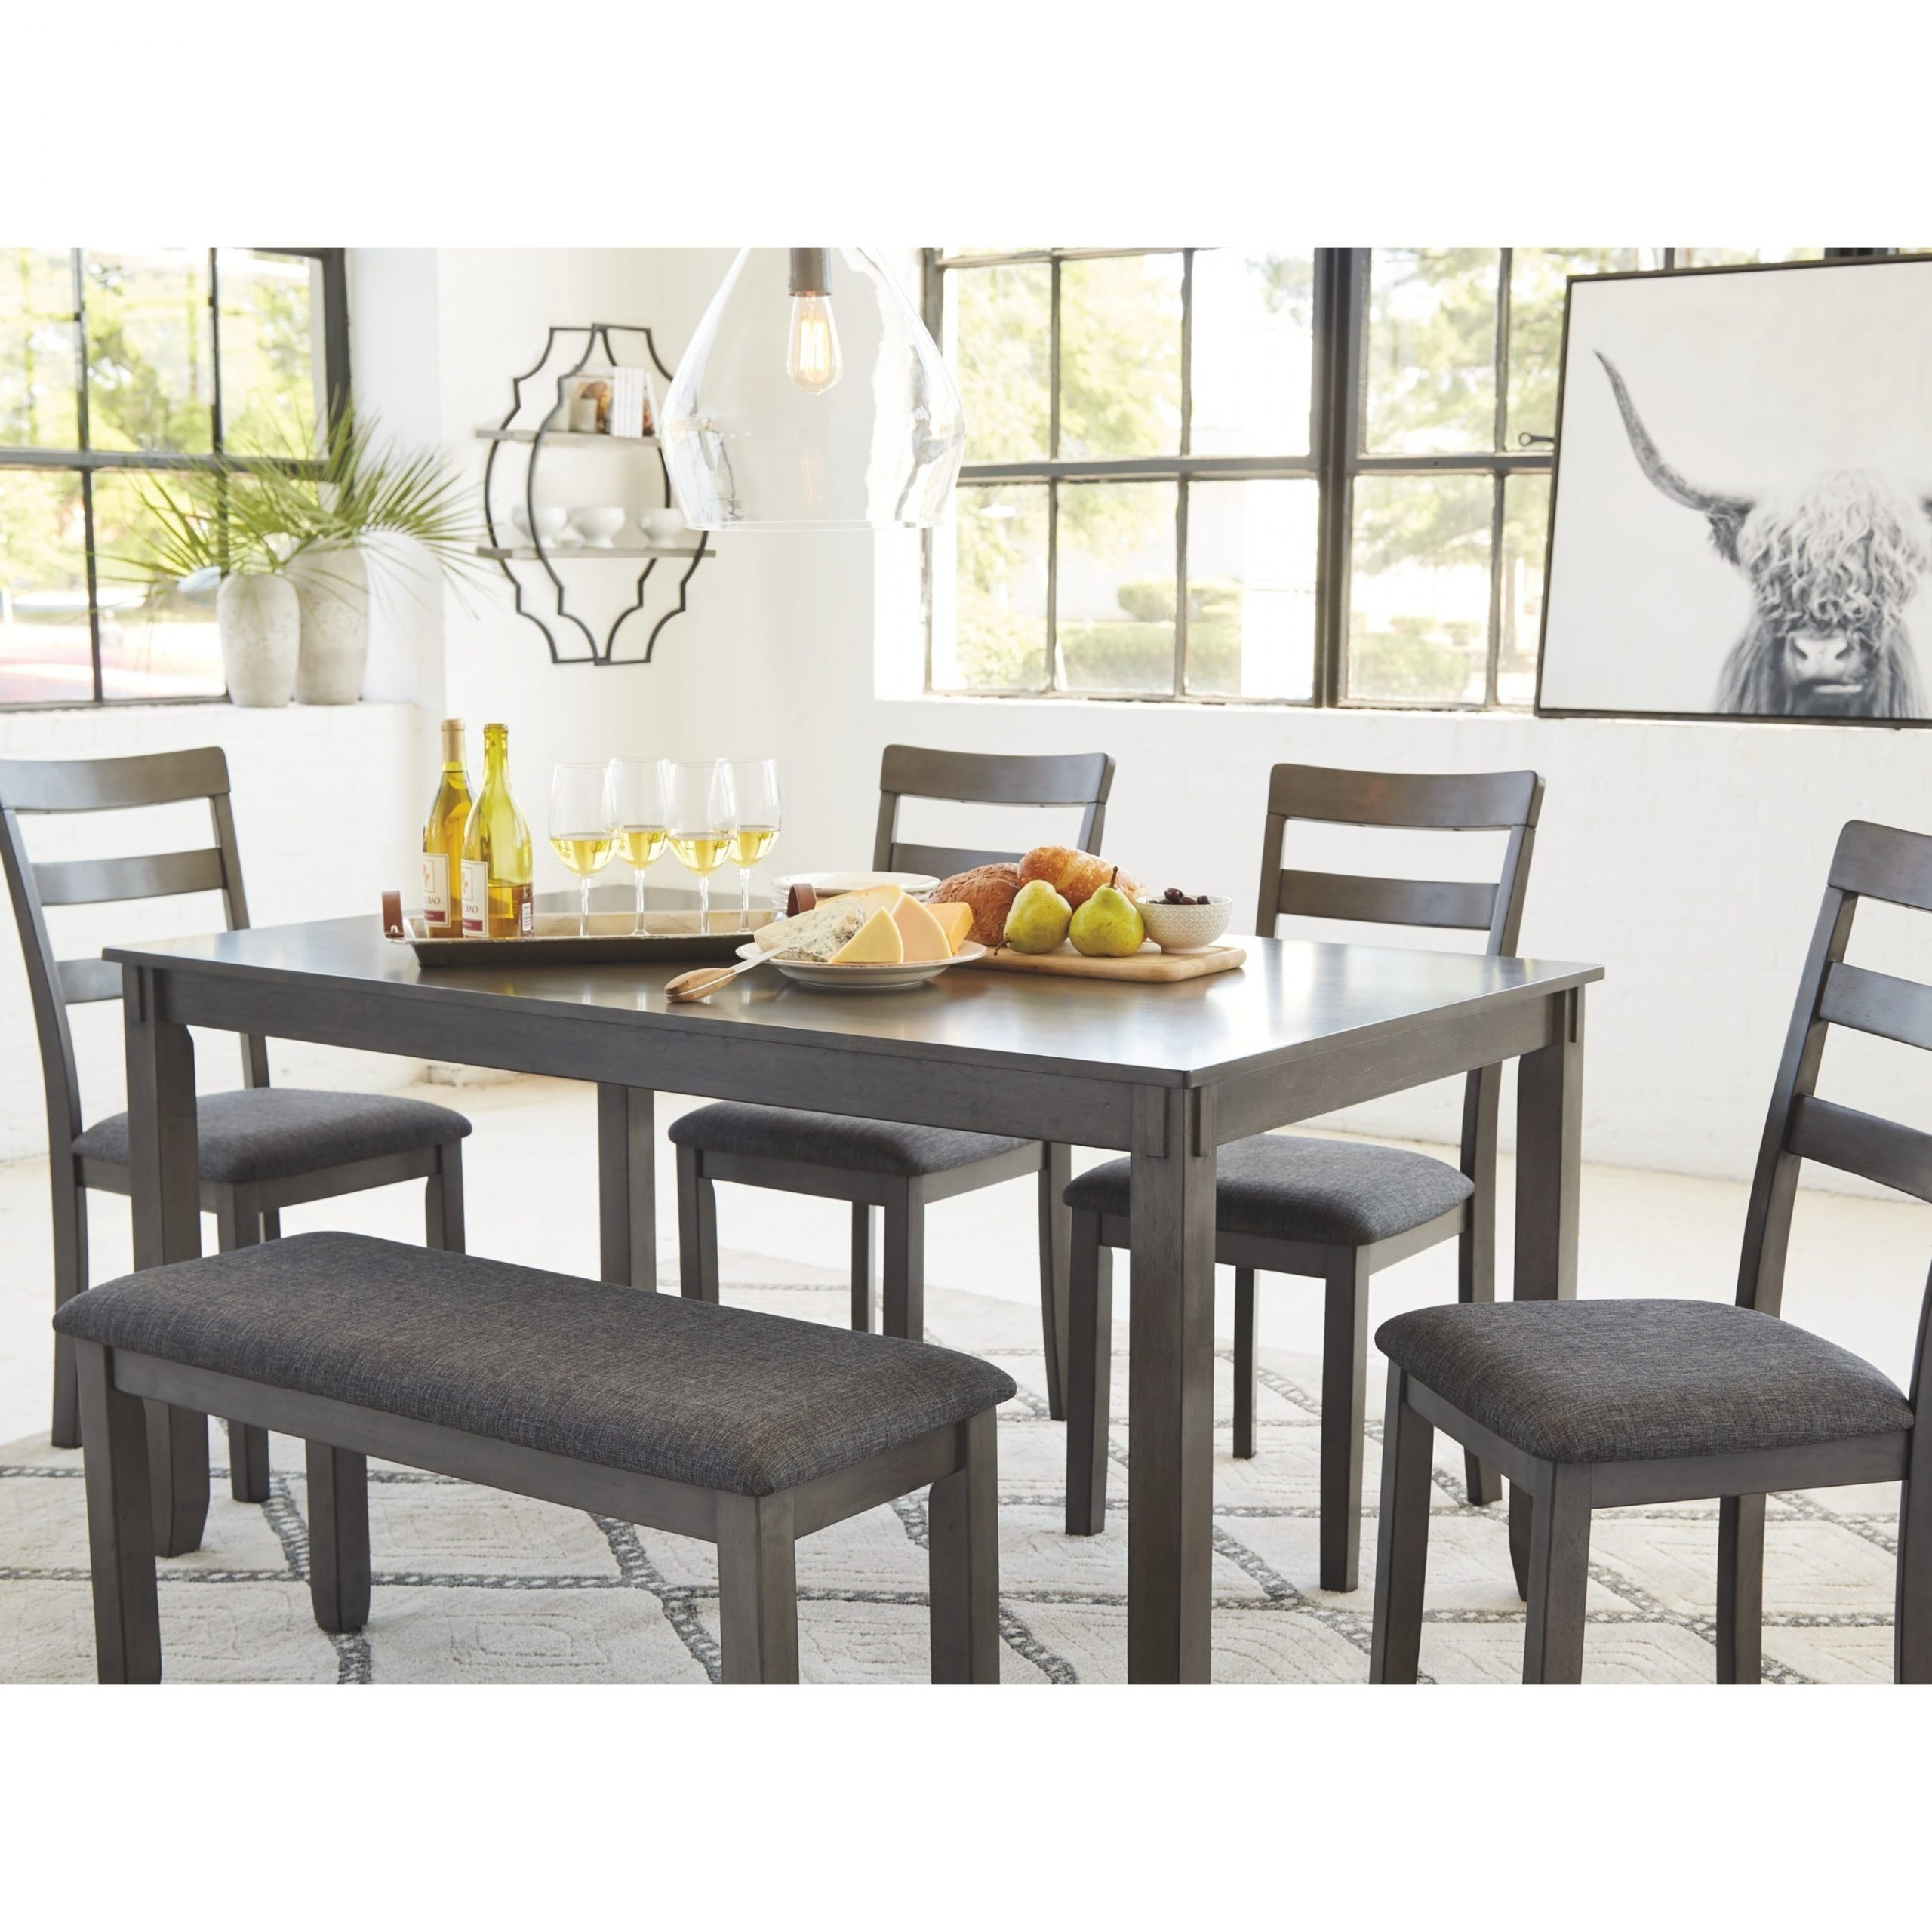 Newest Bridson Rectangular Dining Room Table Set Of 6 – Gray Regarding Charcoal Transitional 6 Seating Rectangular Dining Tables (View 12 of 30)